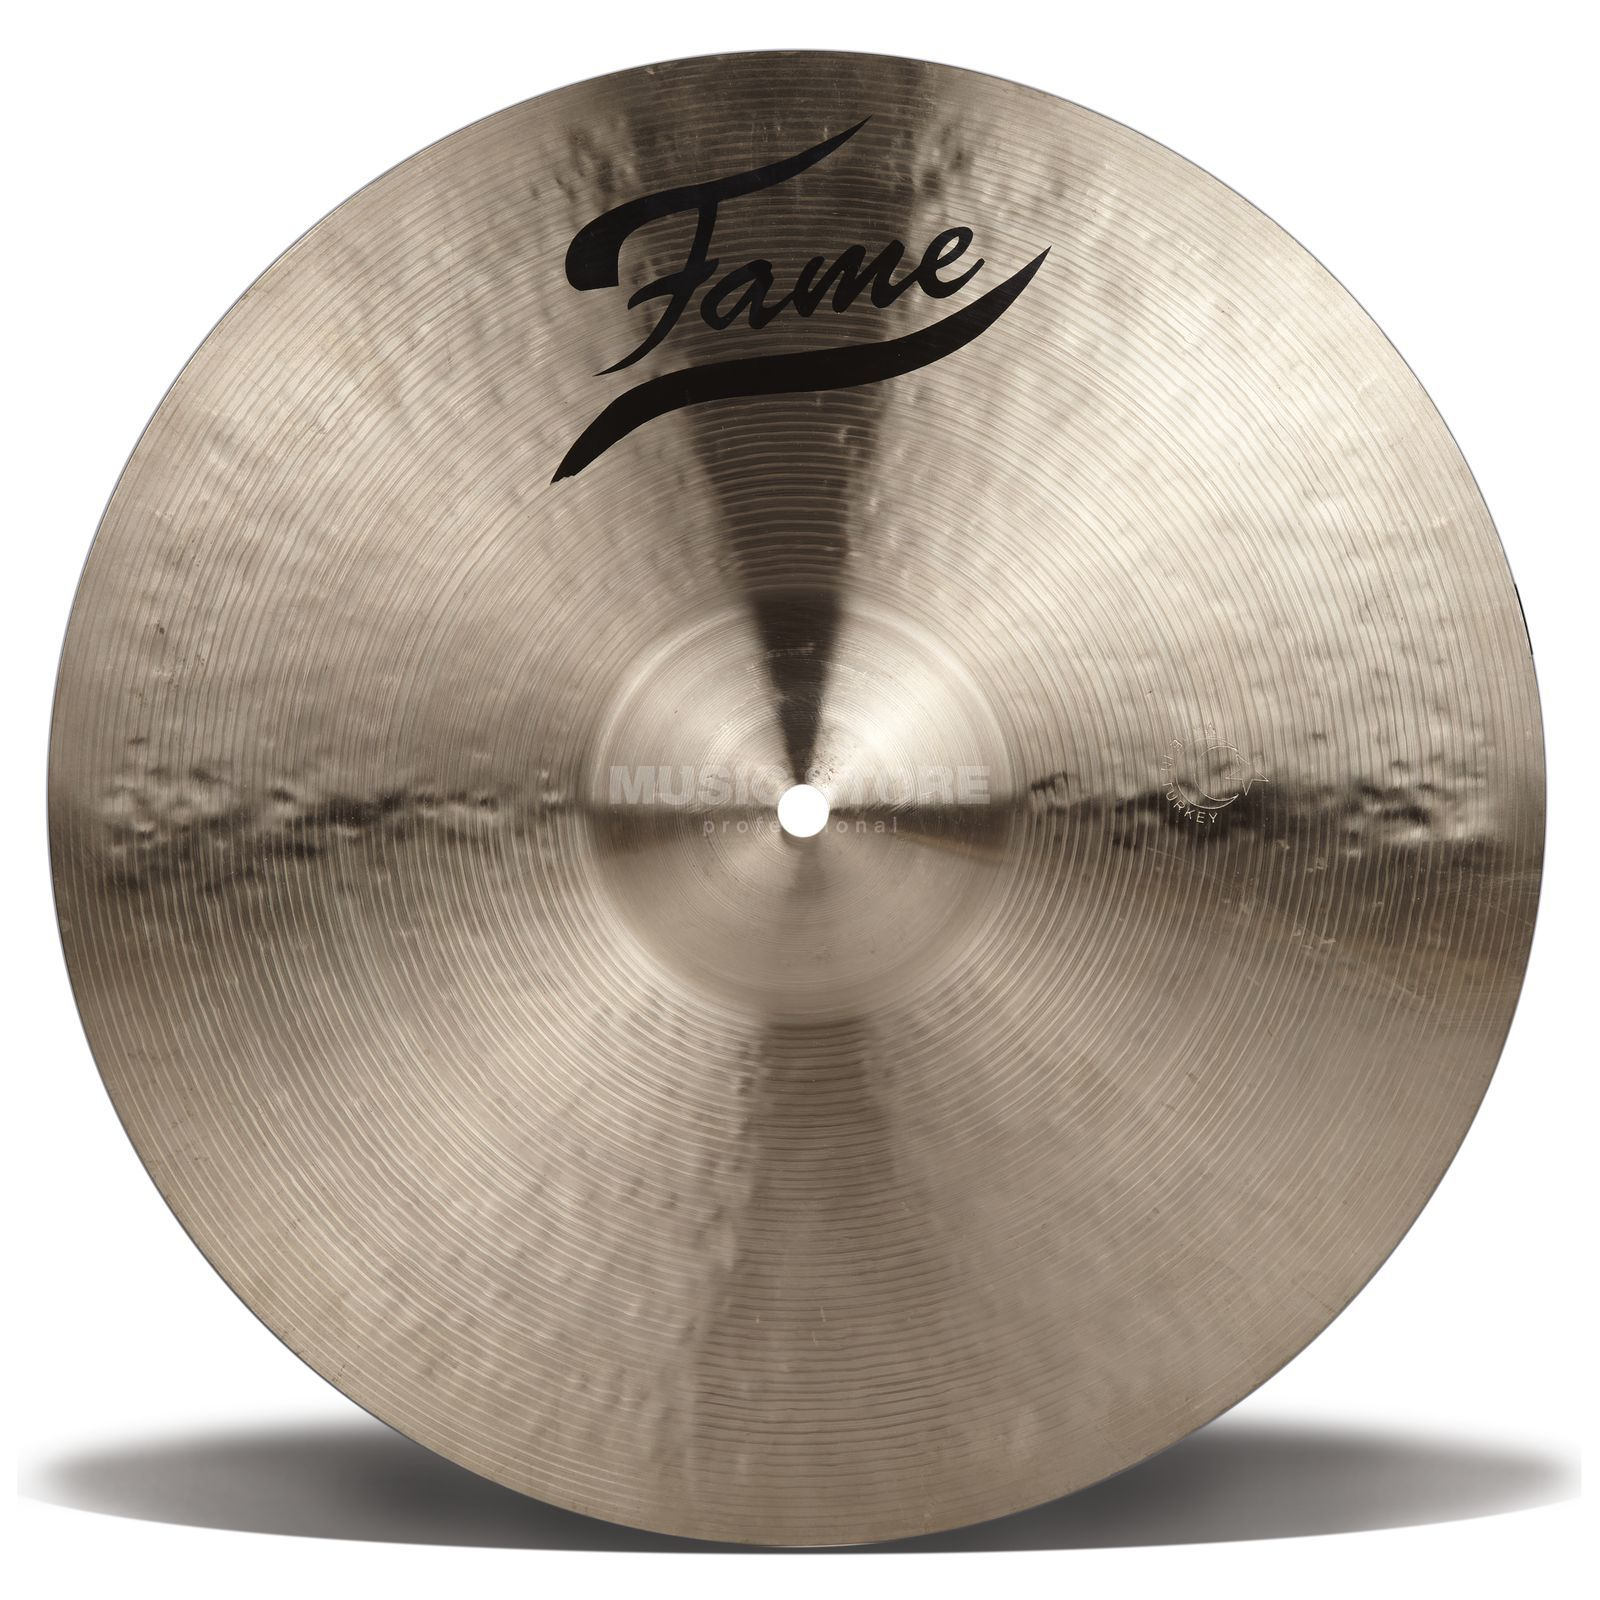 "Fame Masters B20 Thin Crash 16"", Natural Finish Produktbild"